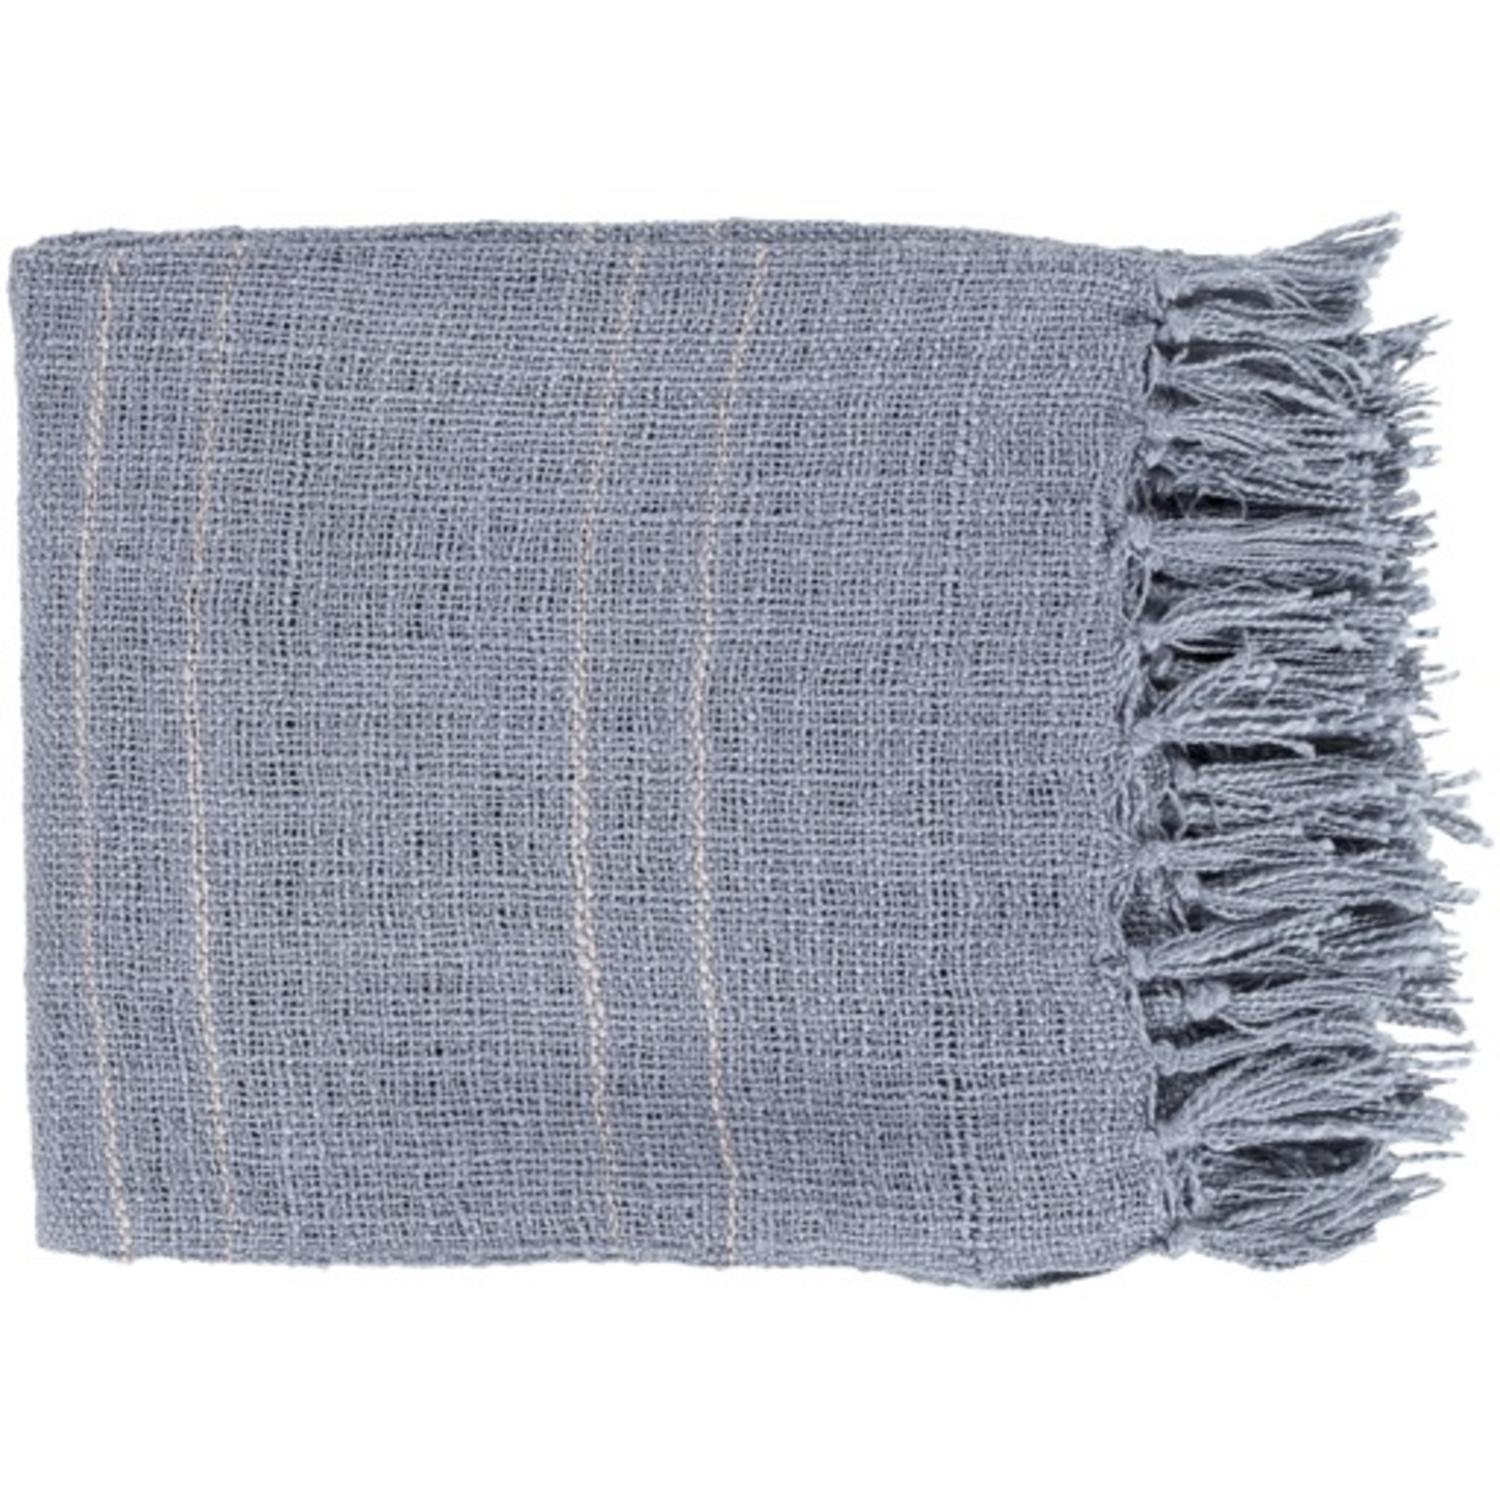 "Slate Blue with Dove Gray Stripes Woven and Fringed Throw Blanket 50"" x 60"""